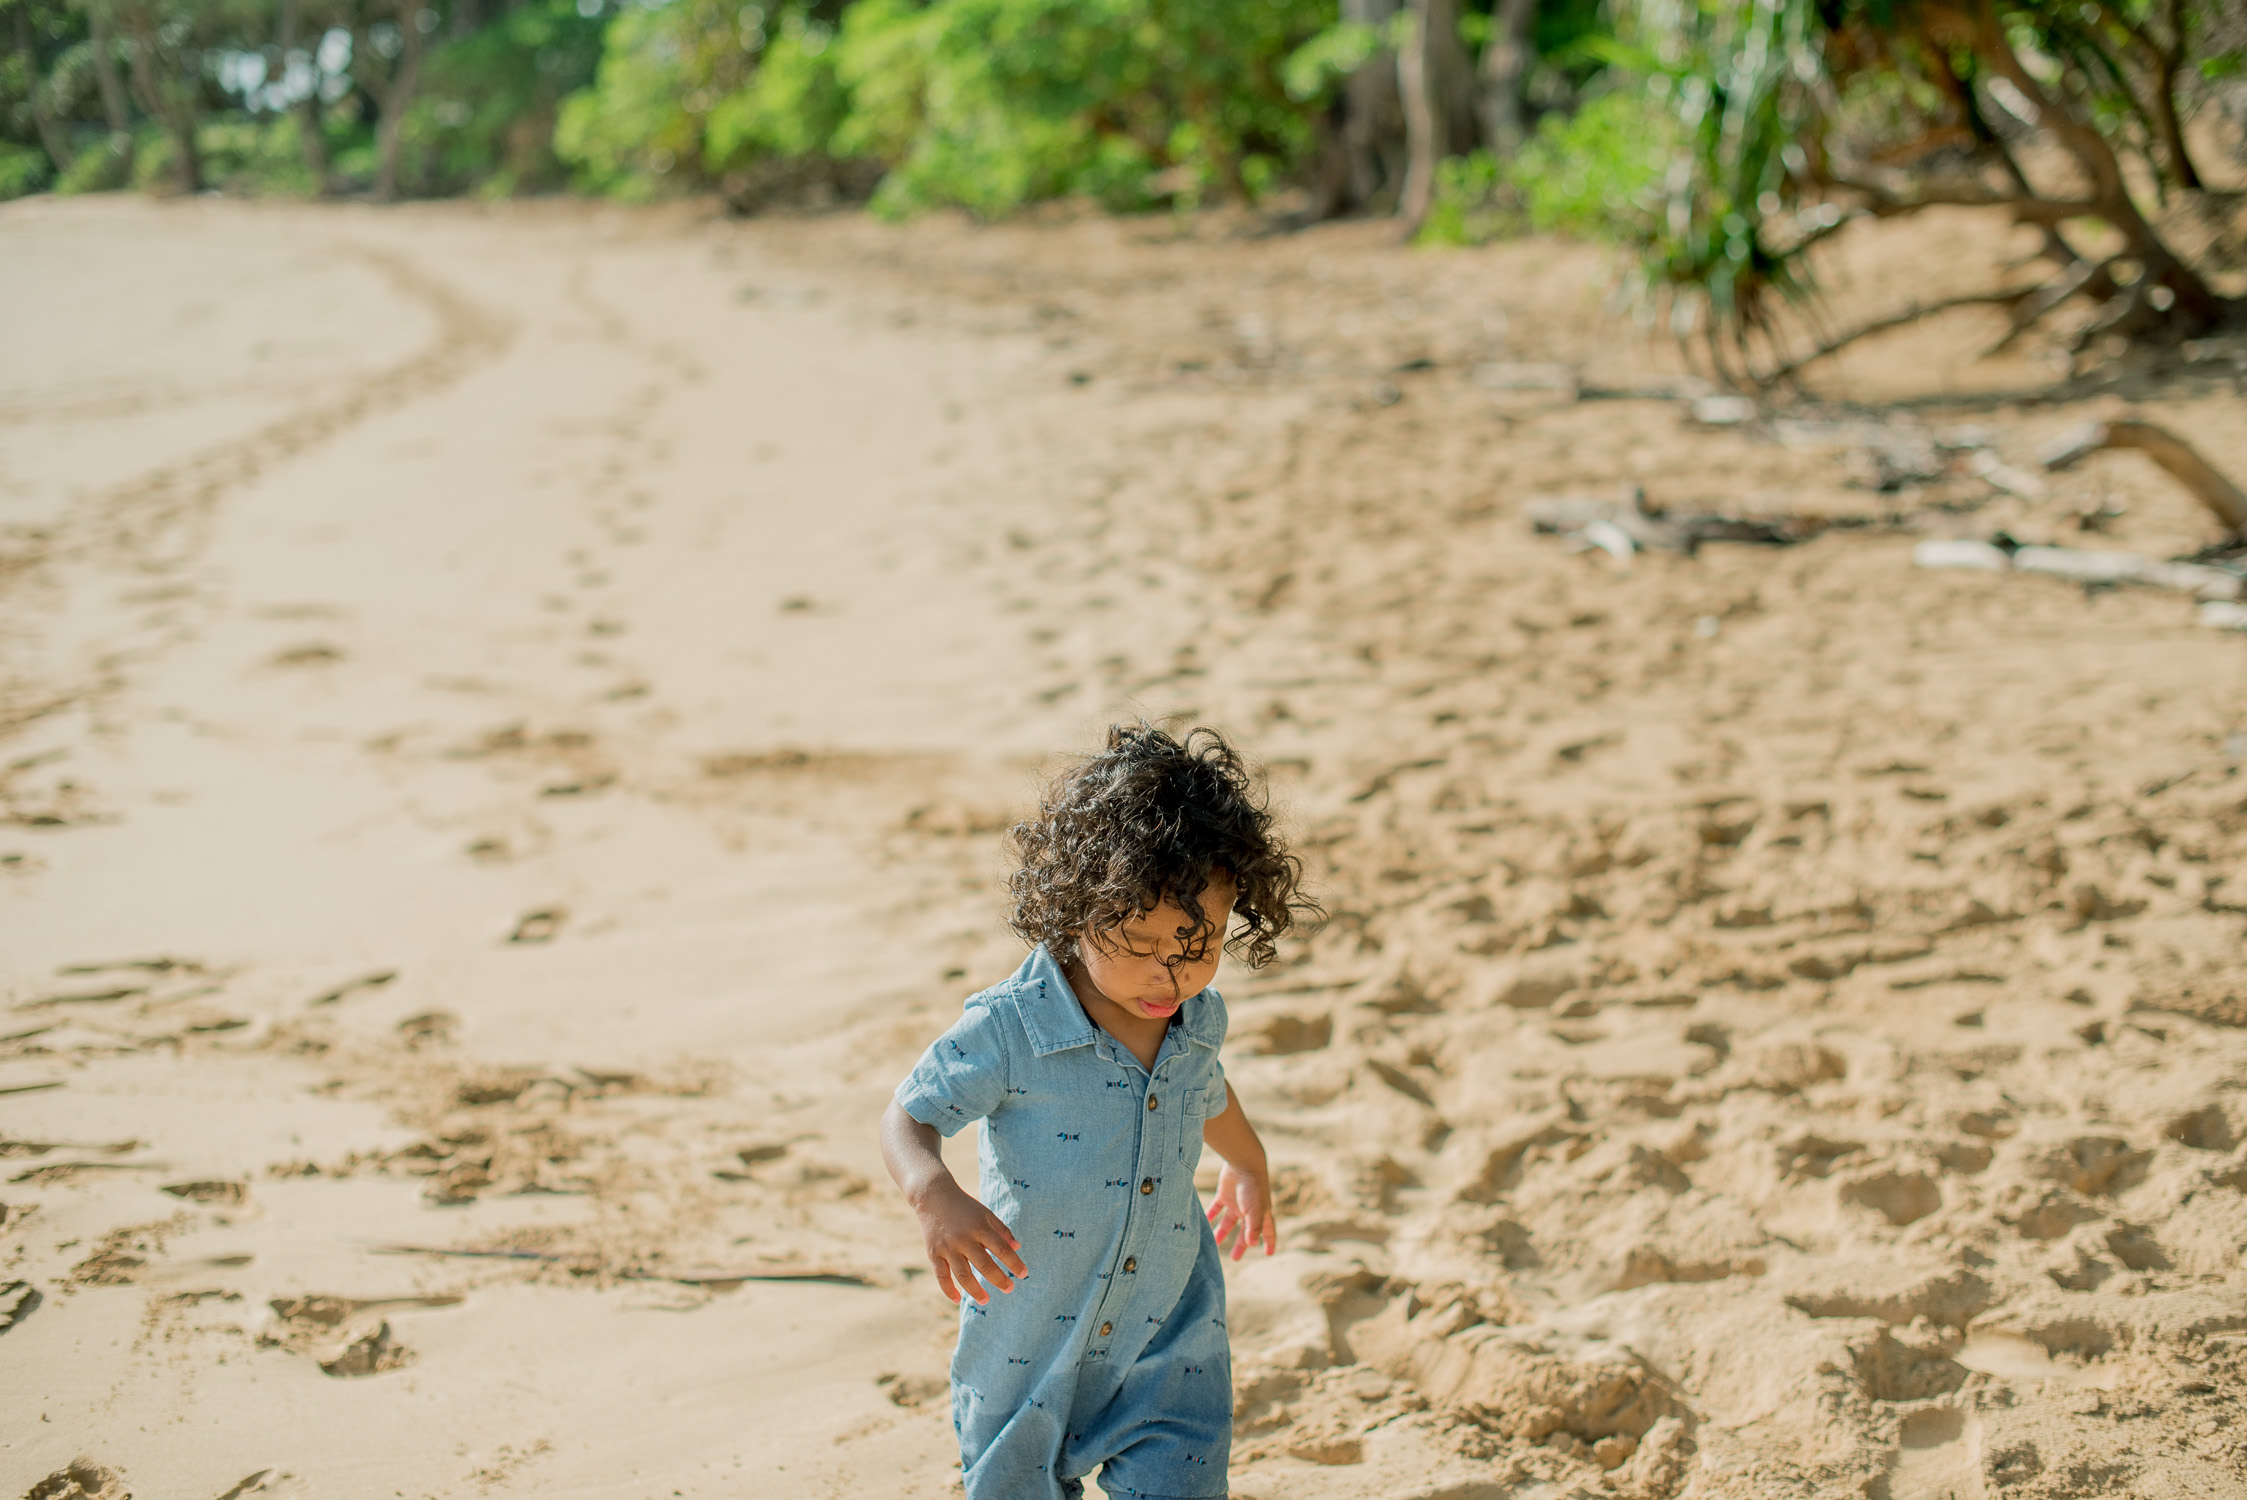 3 Year old walking on beach